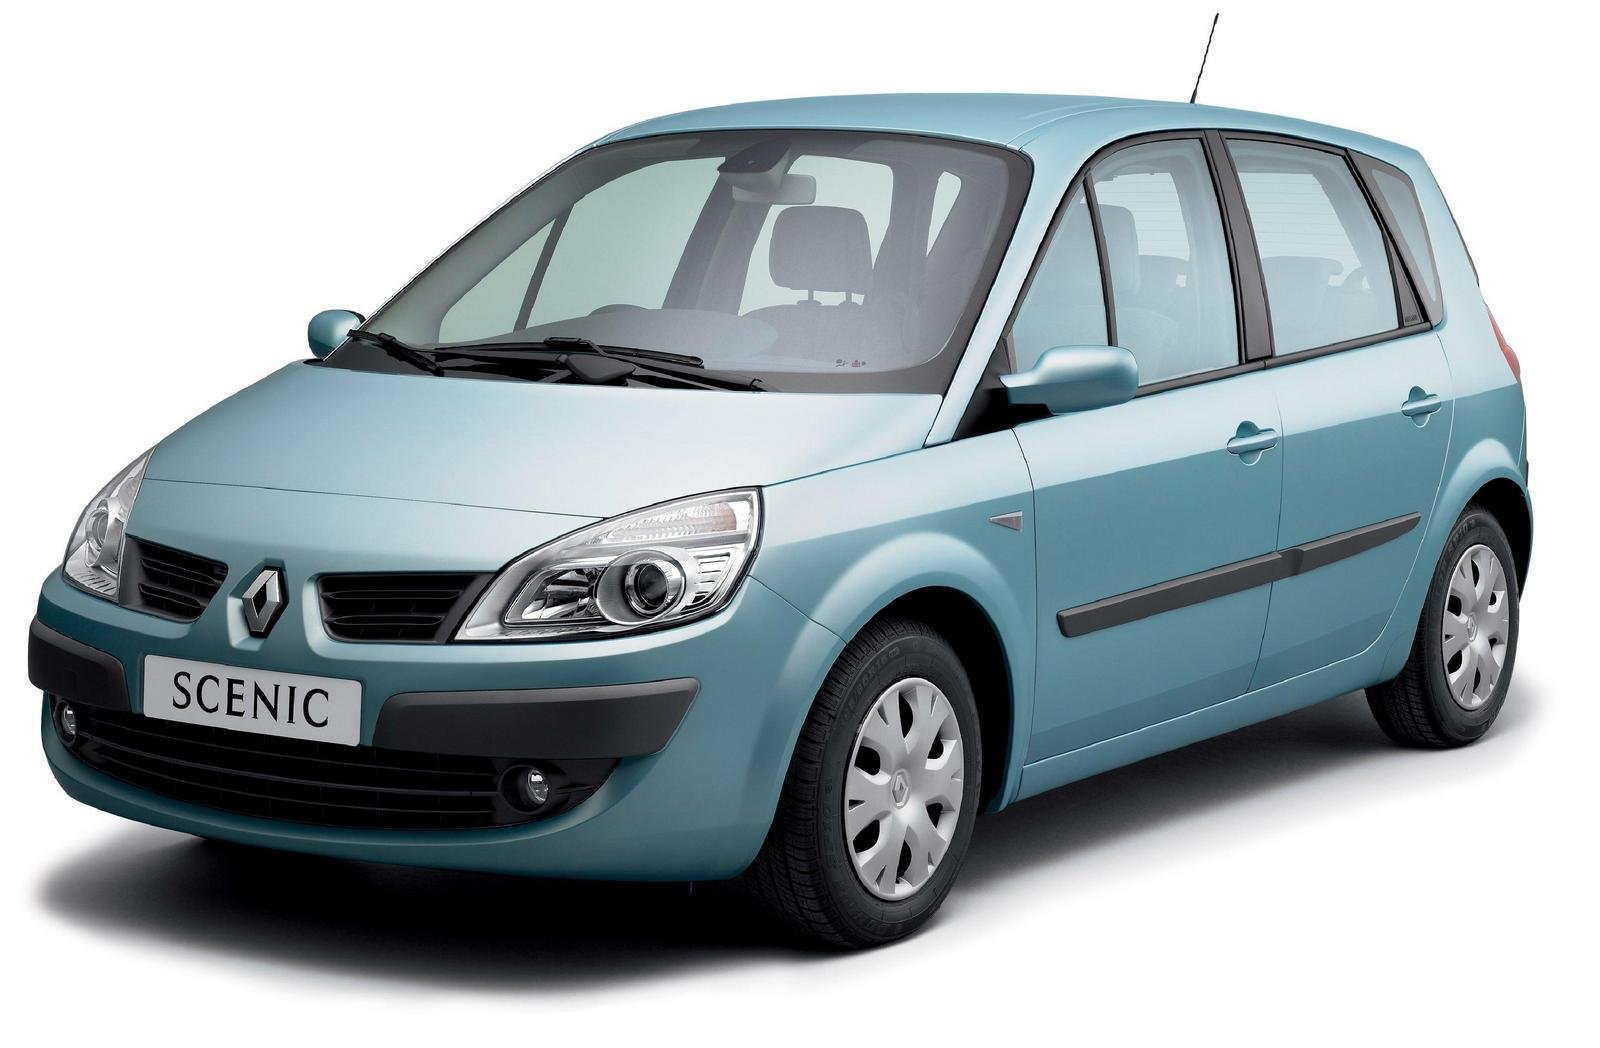 2006 renault scenic picture 86973 car review top speed. Black Bedroom Furniture Sets. Home Design Ideas